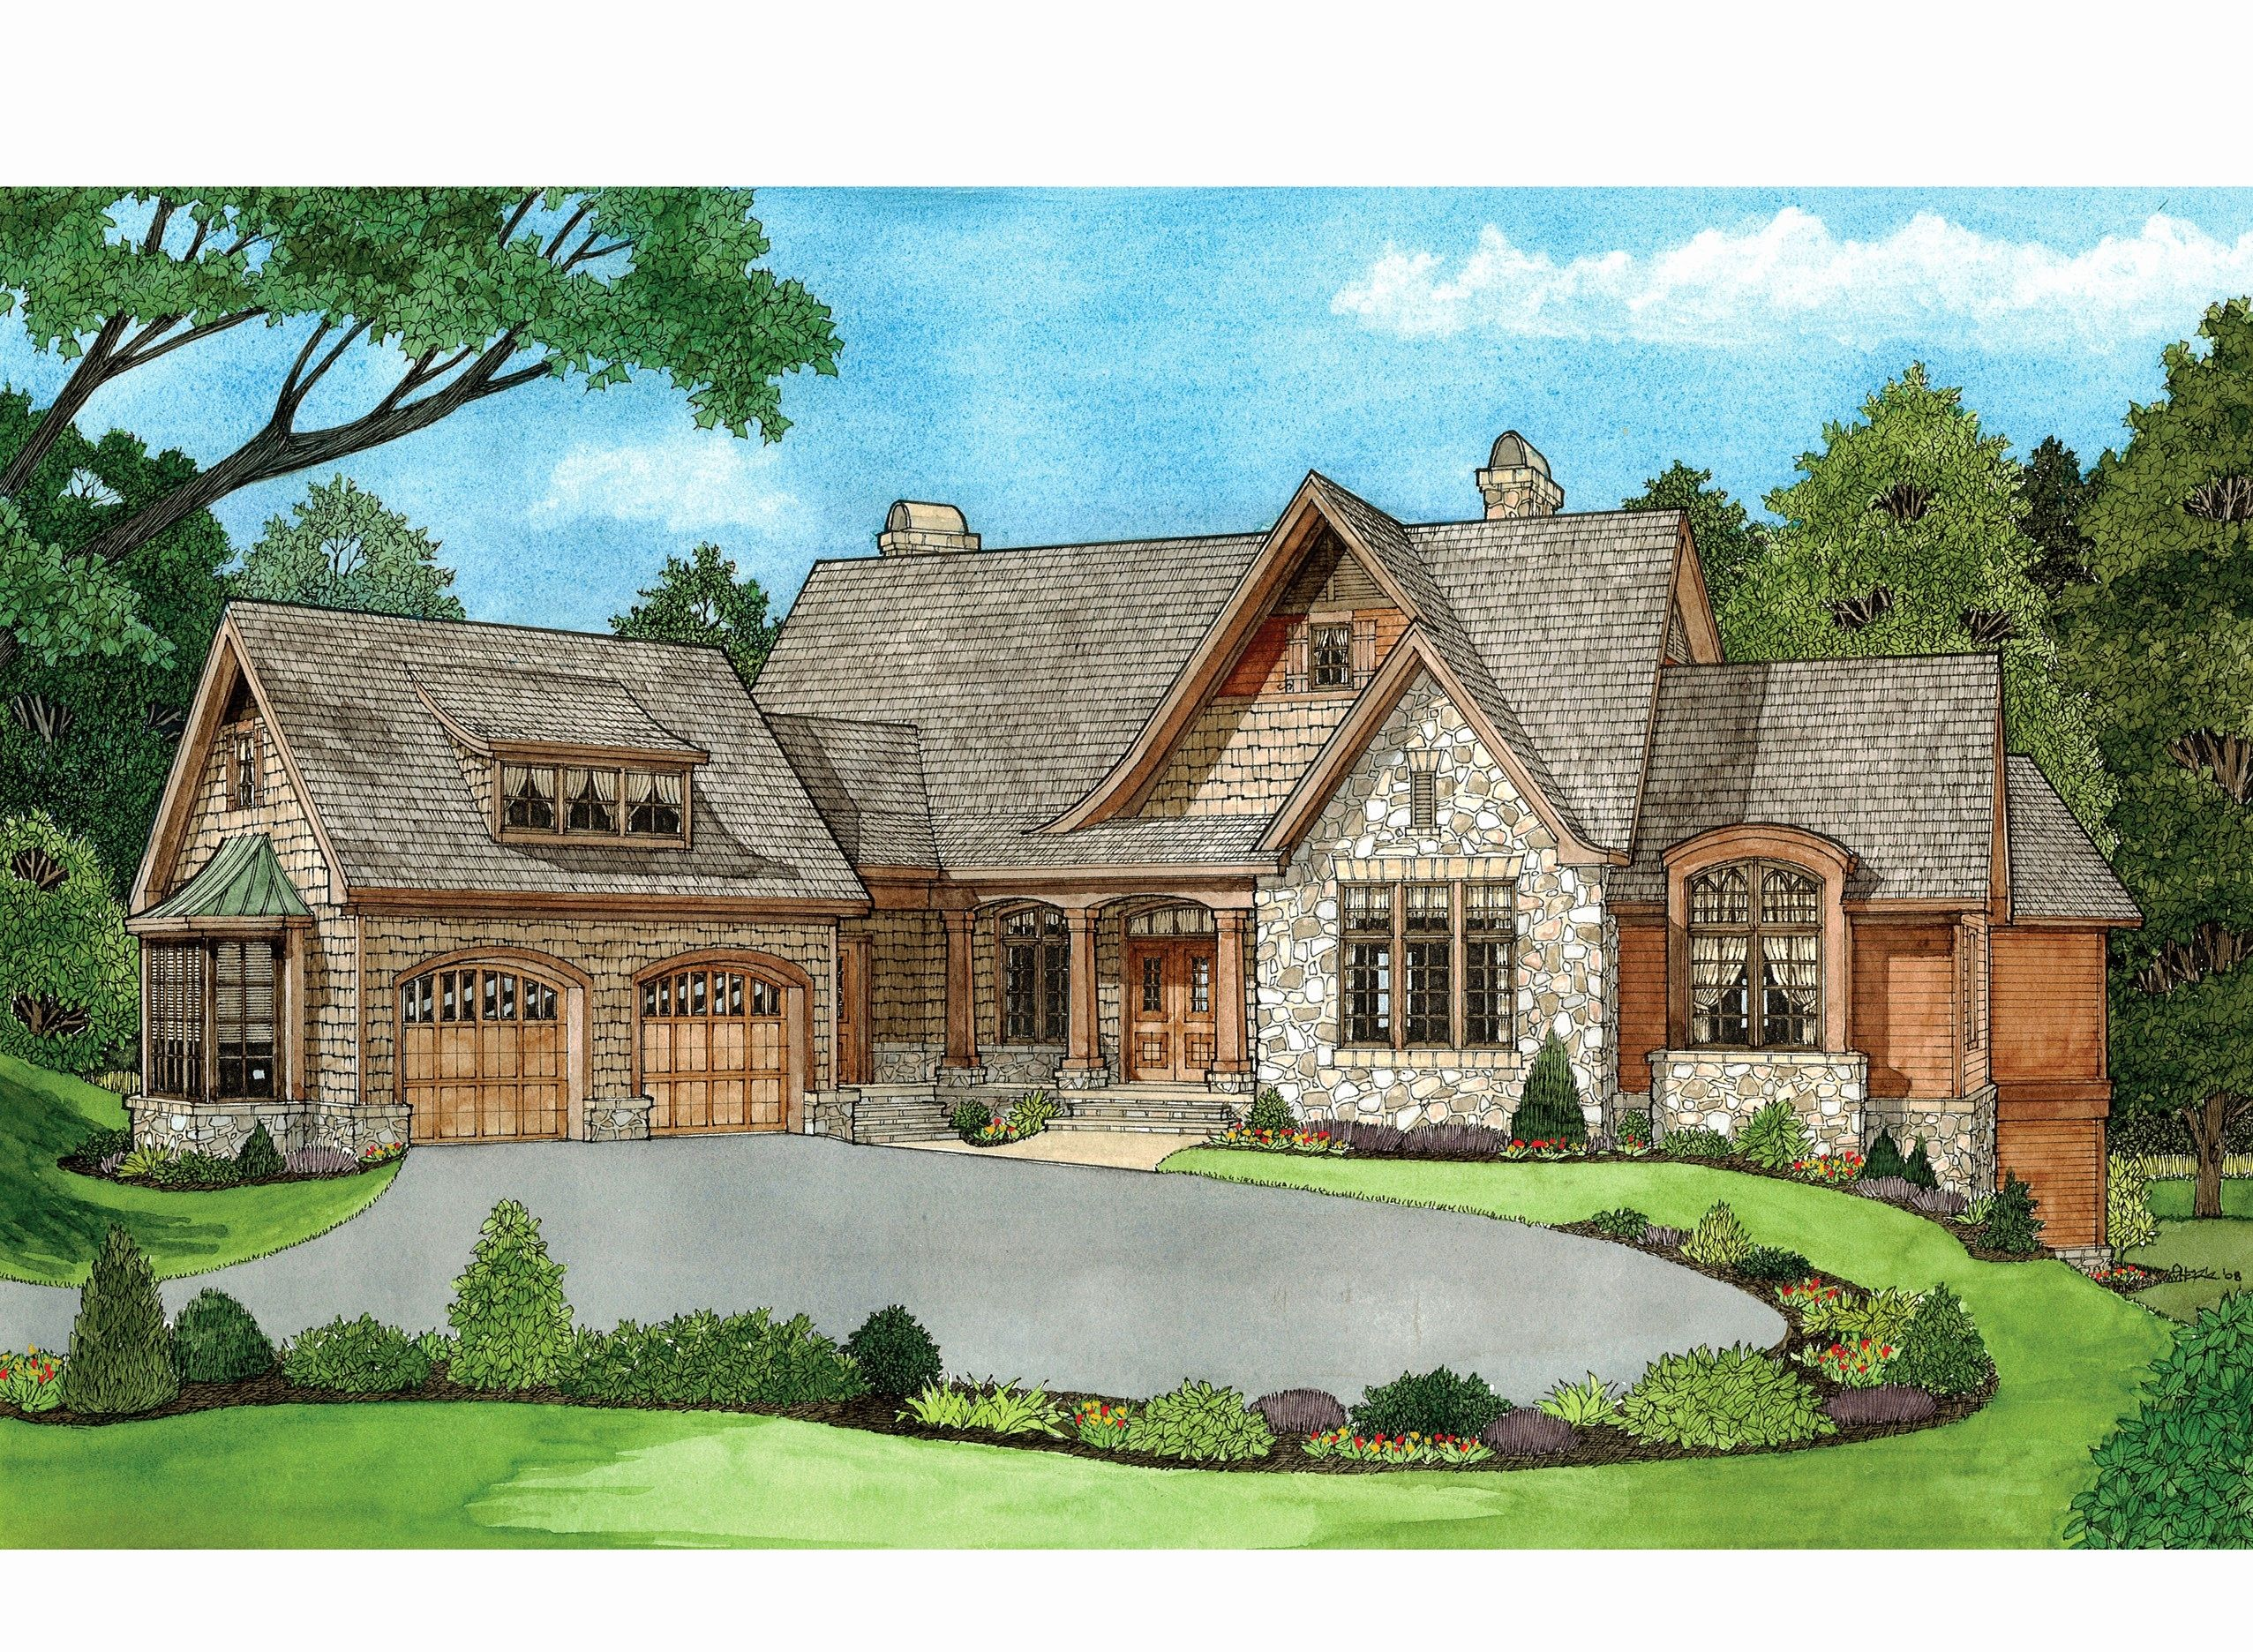 2 Story House Plans with Walkout Basement Best Of House Plans Walkout  Basement Floor Hillside F… | Sloping lot house plan, Basement house plans,  Cottage house plans